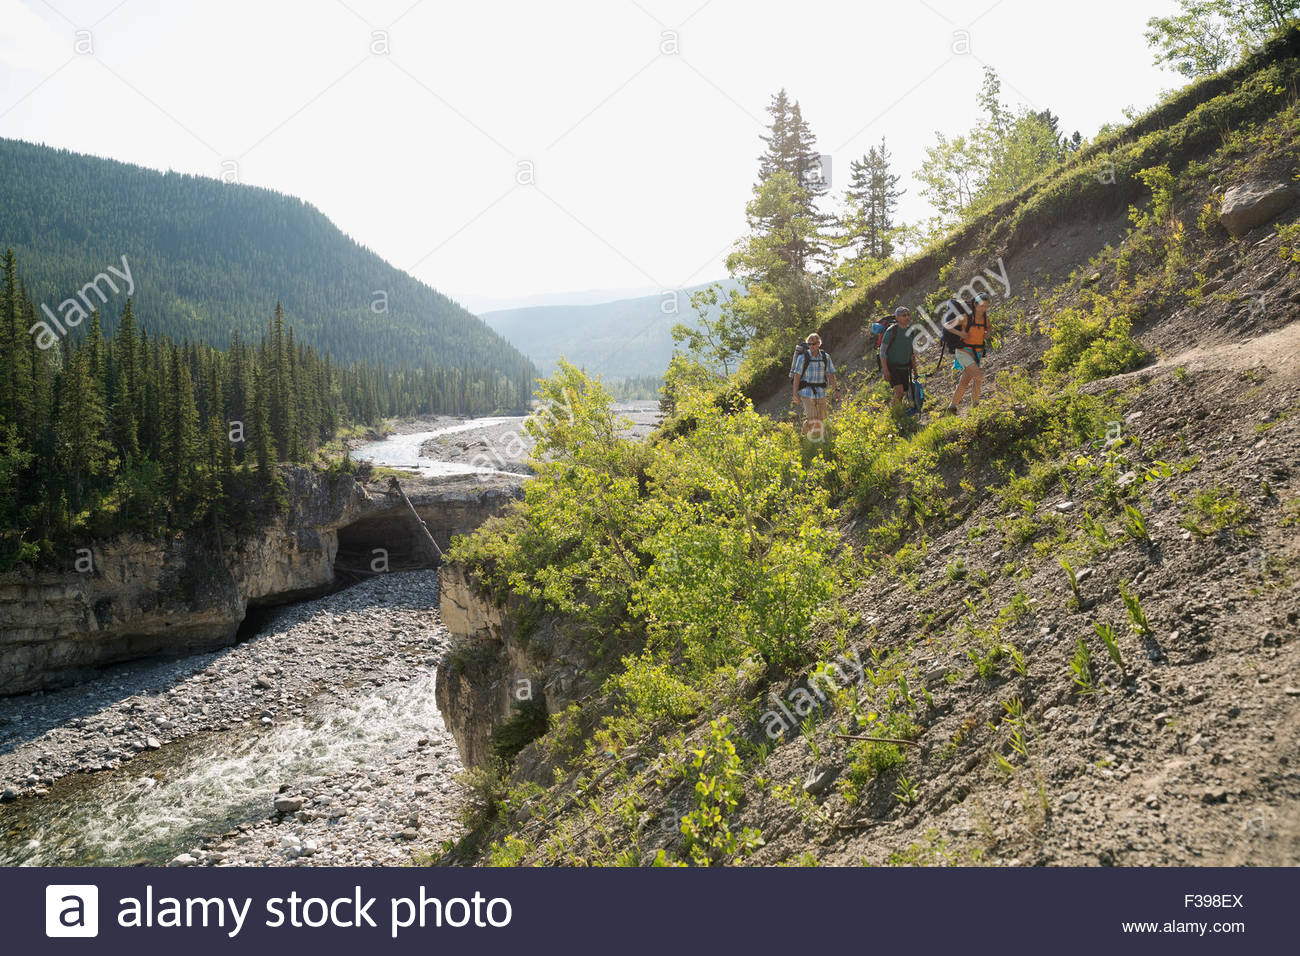 Friends hiking along craggy ridge above river - Stock Image